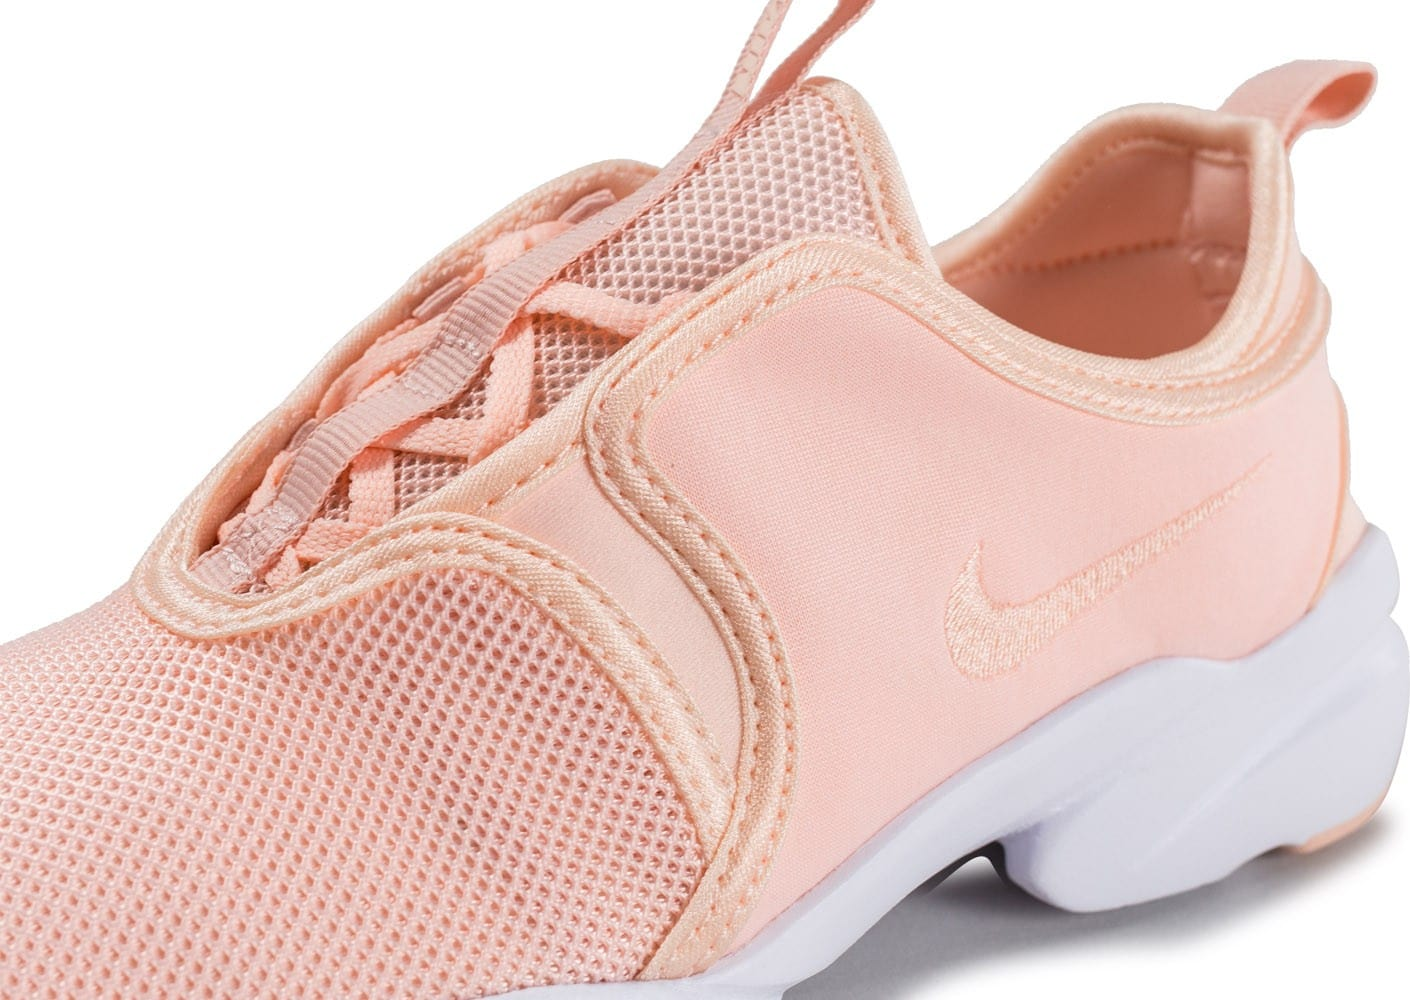 best value 2fe03 9a79e ... Chaussures Nike Loden W rose pale vue dessus